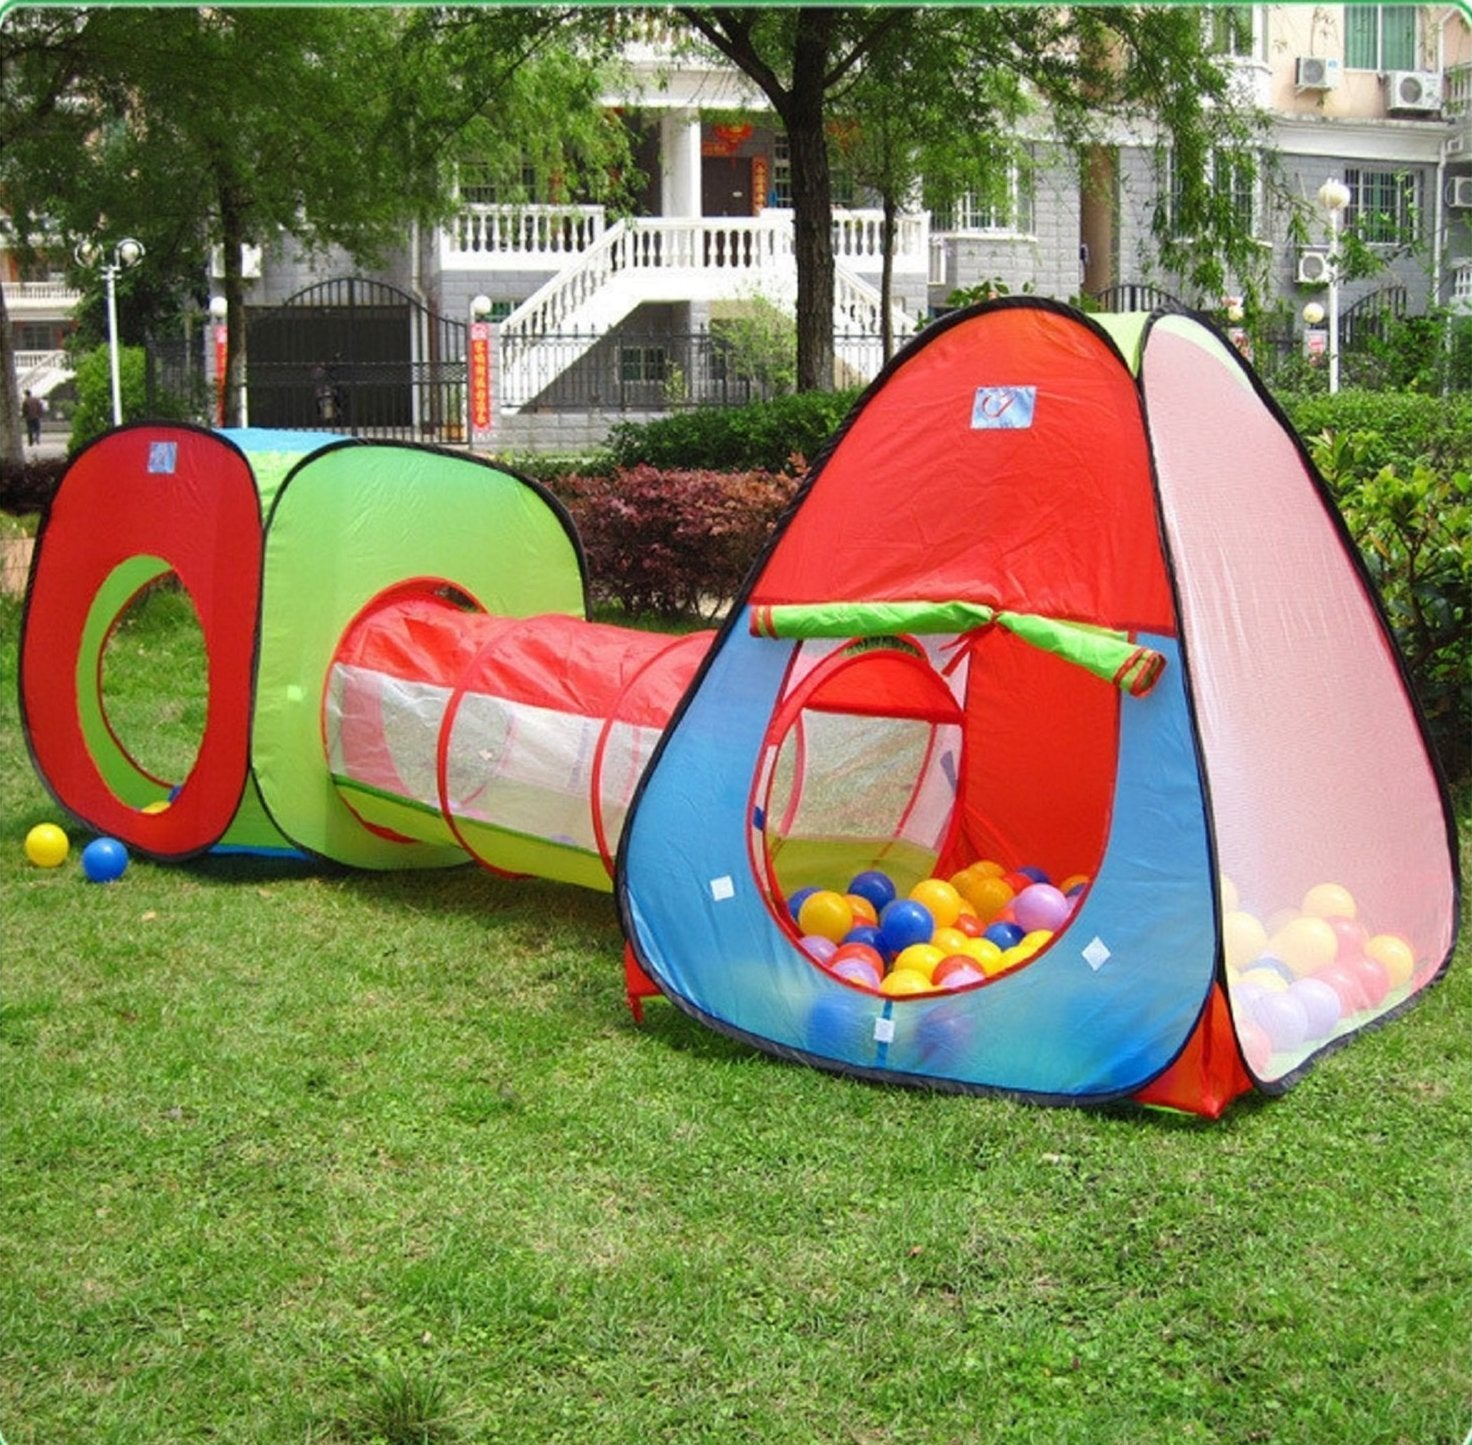 Kids Indoor Play Tent With Tunnel SetOutdoor Children Playhouse Ball Tent - Perfect Gift For Toddlers Child(Ball Pits Not Included) & Kids Play Tent With Tunnel SetOutdoor Children Playhouse u2013 VicPow